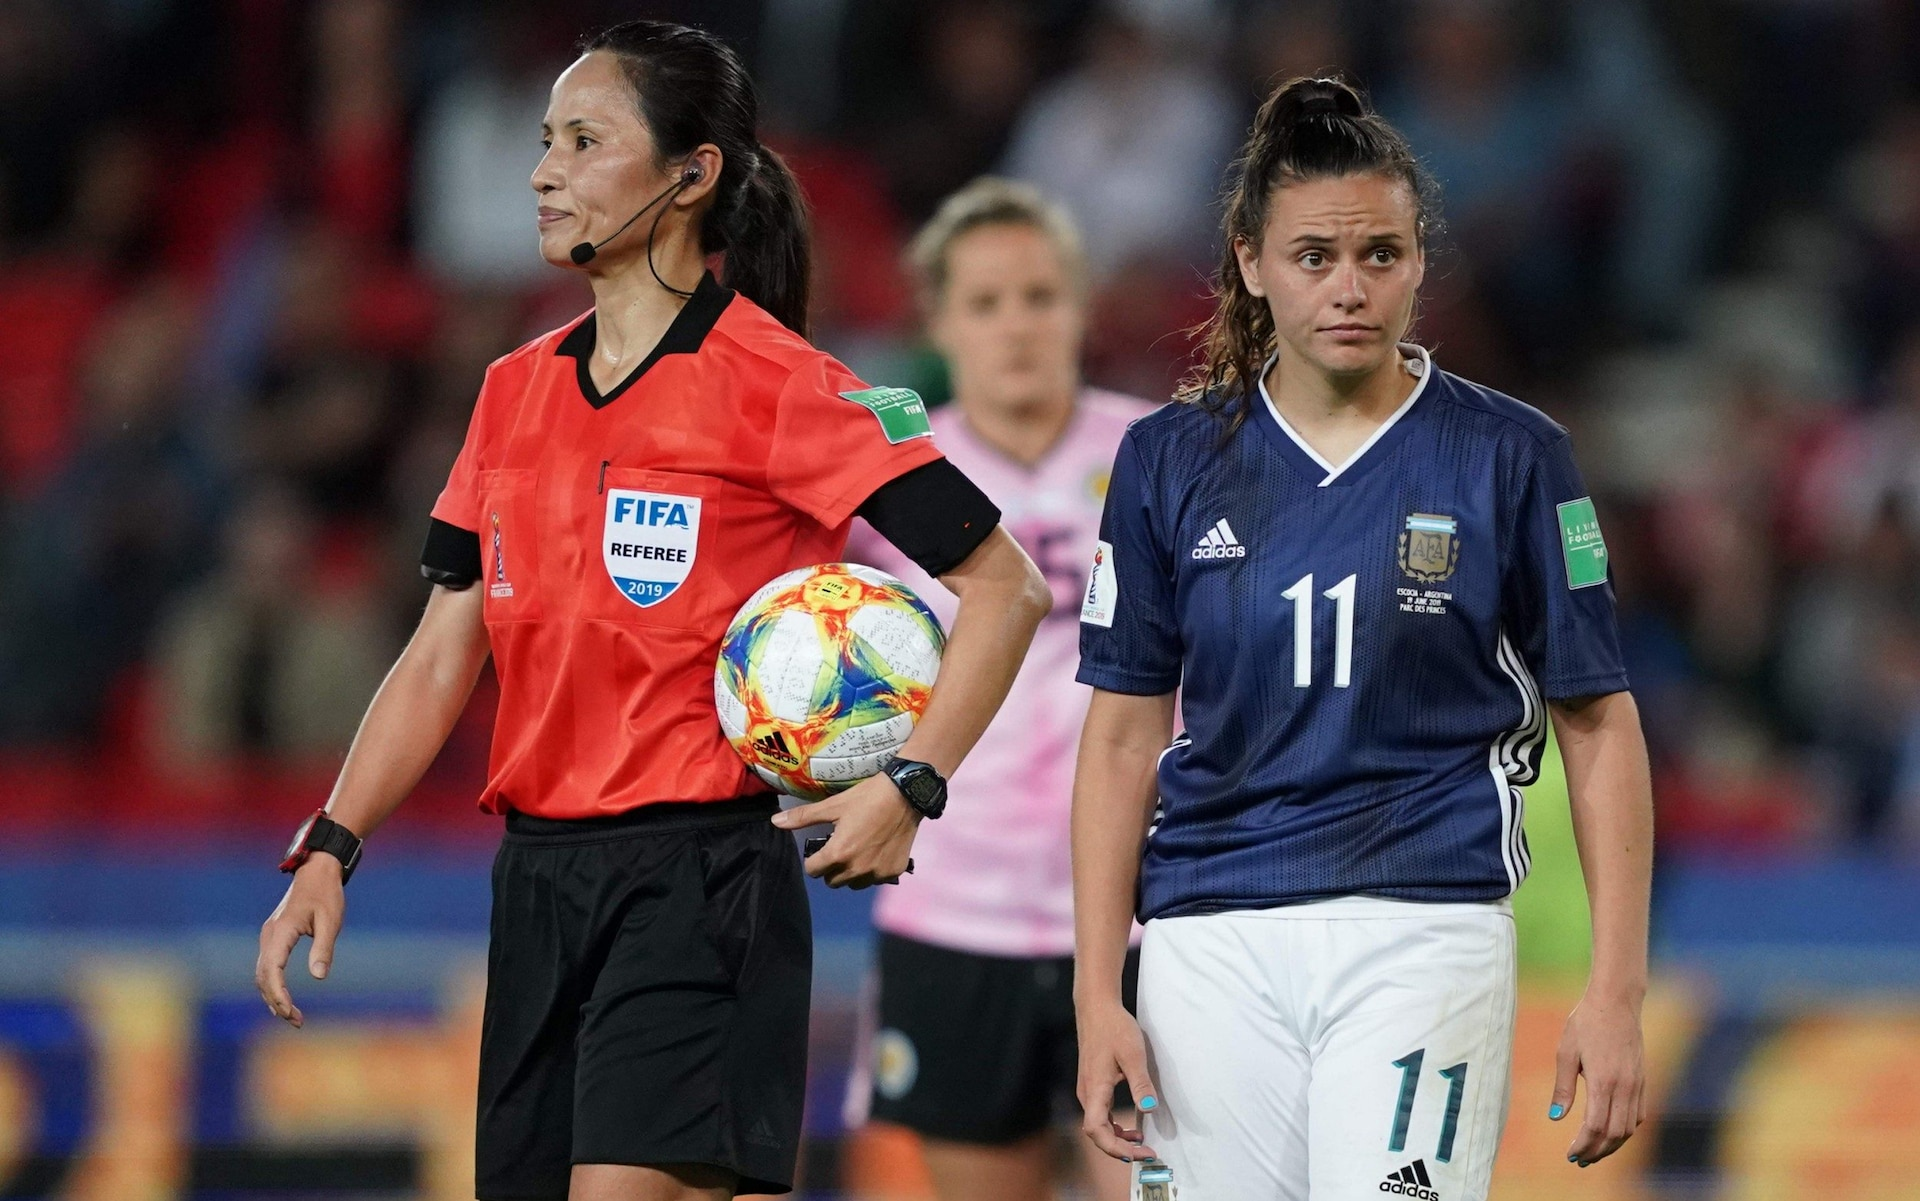 VAR Controversy at the Women's World Cup